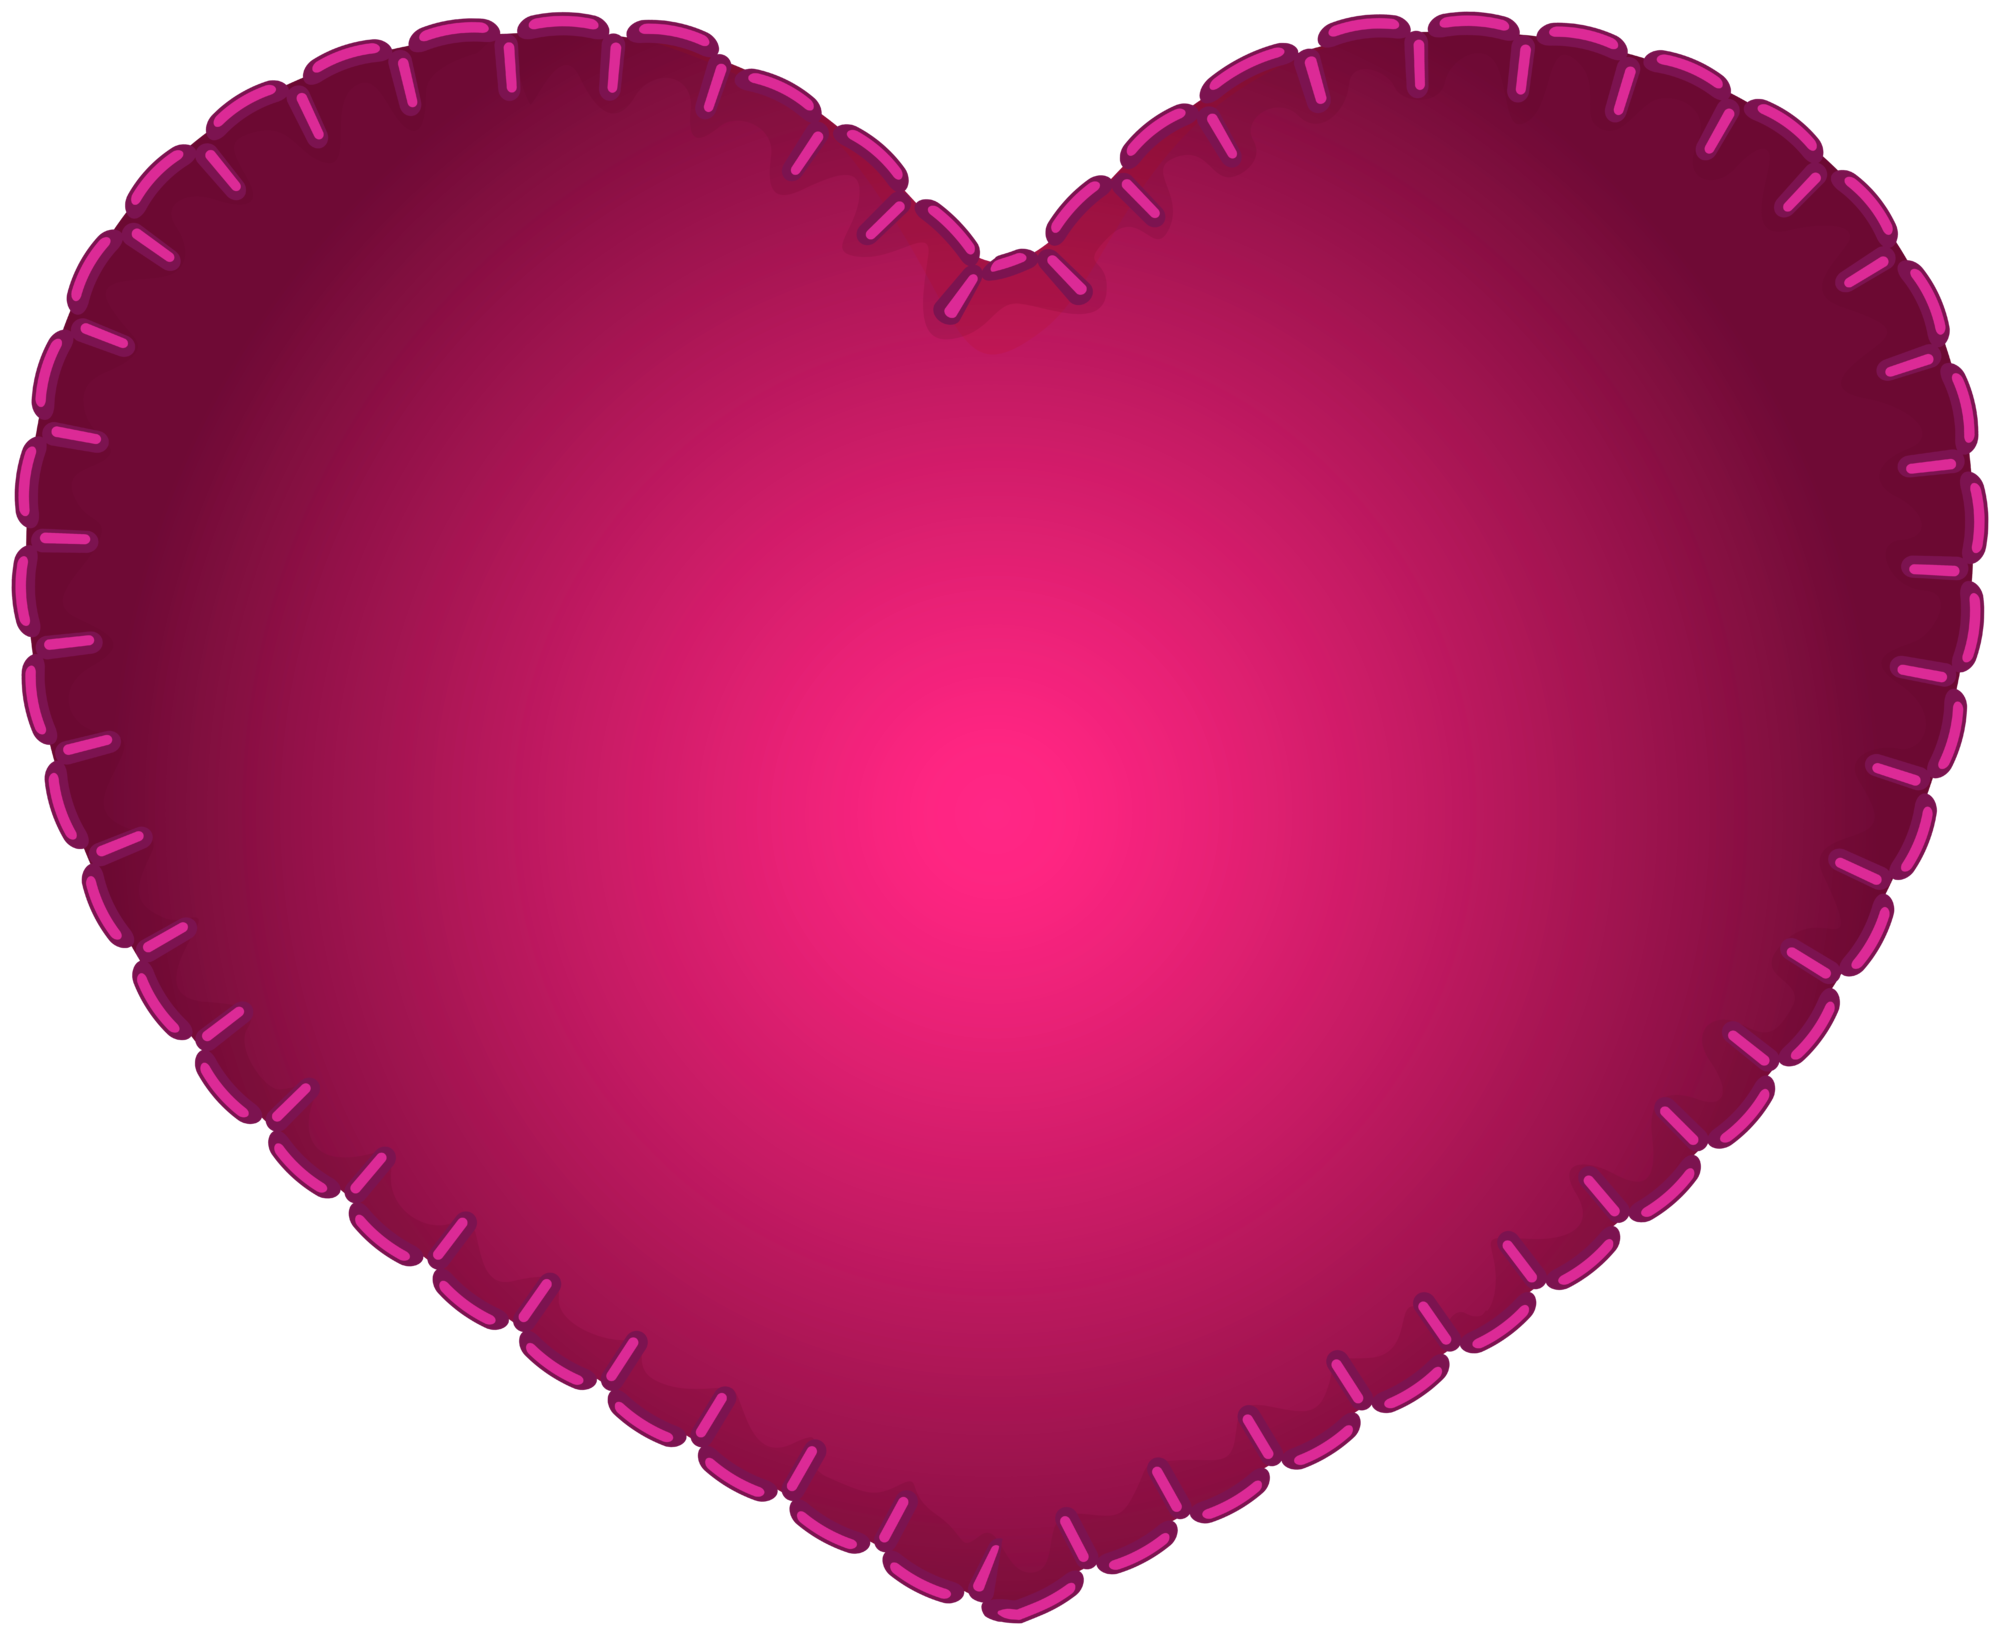 Pink Heart Sewing Style PNG Clipart